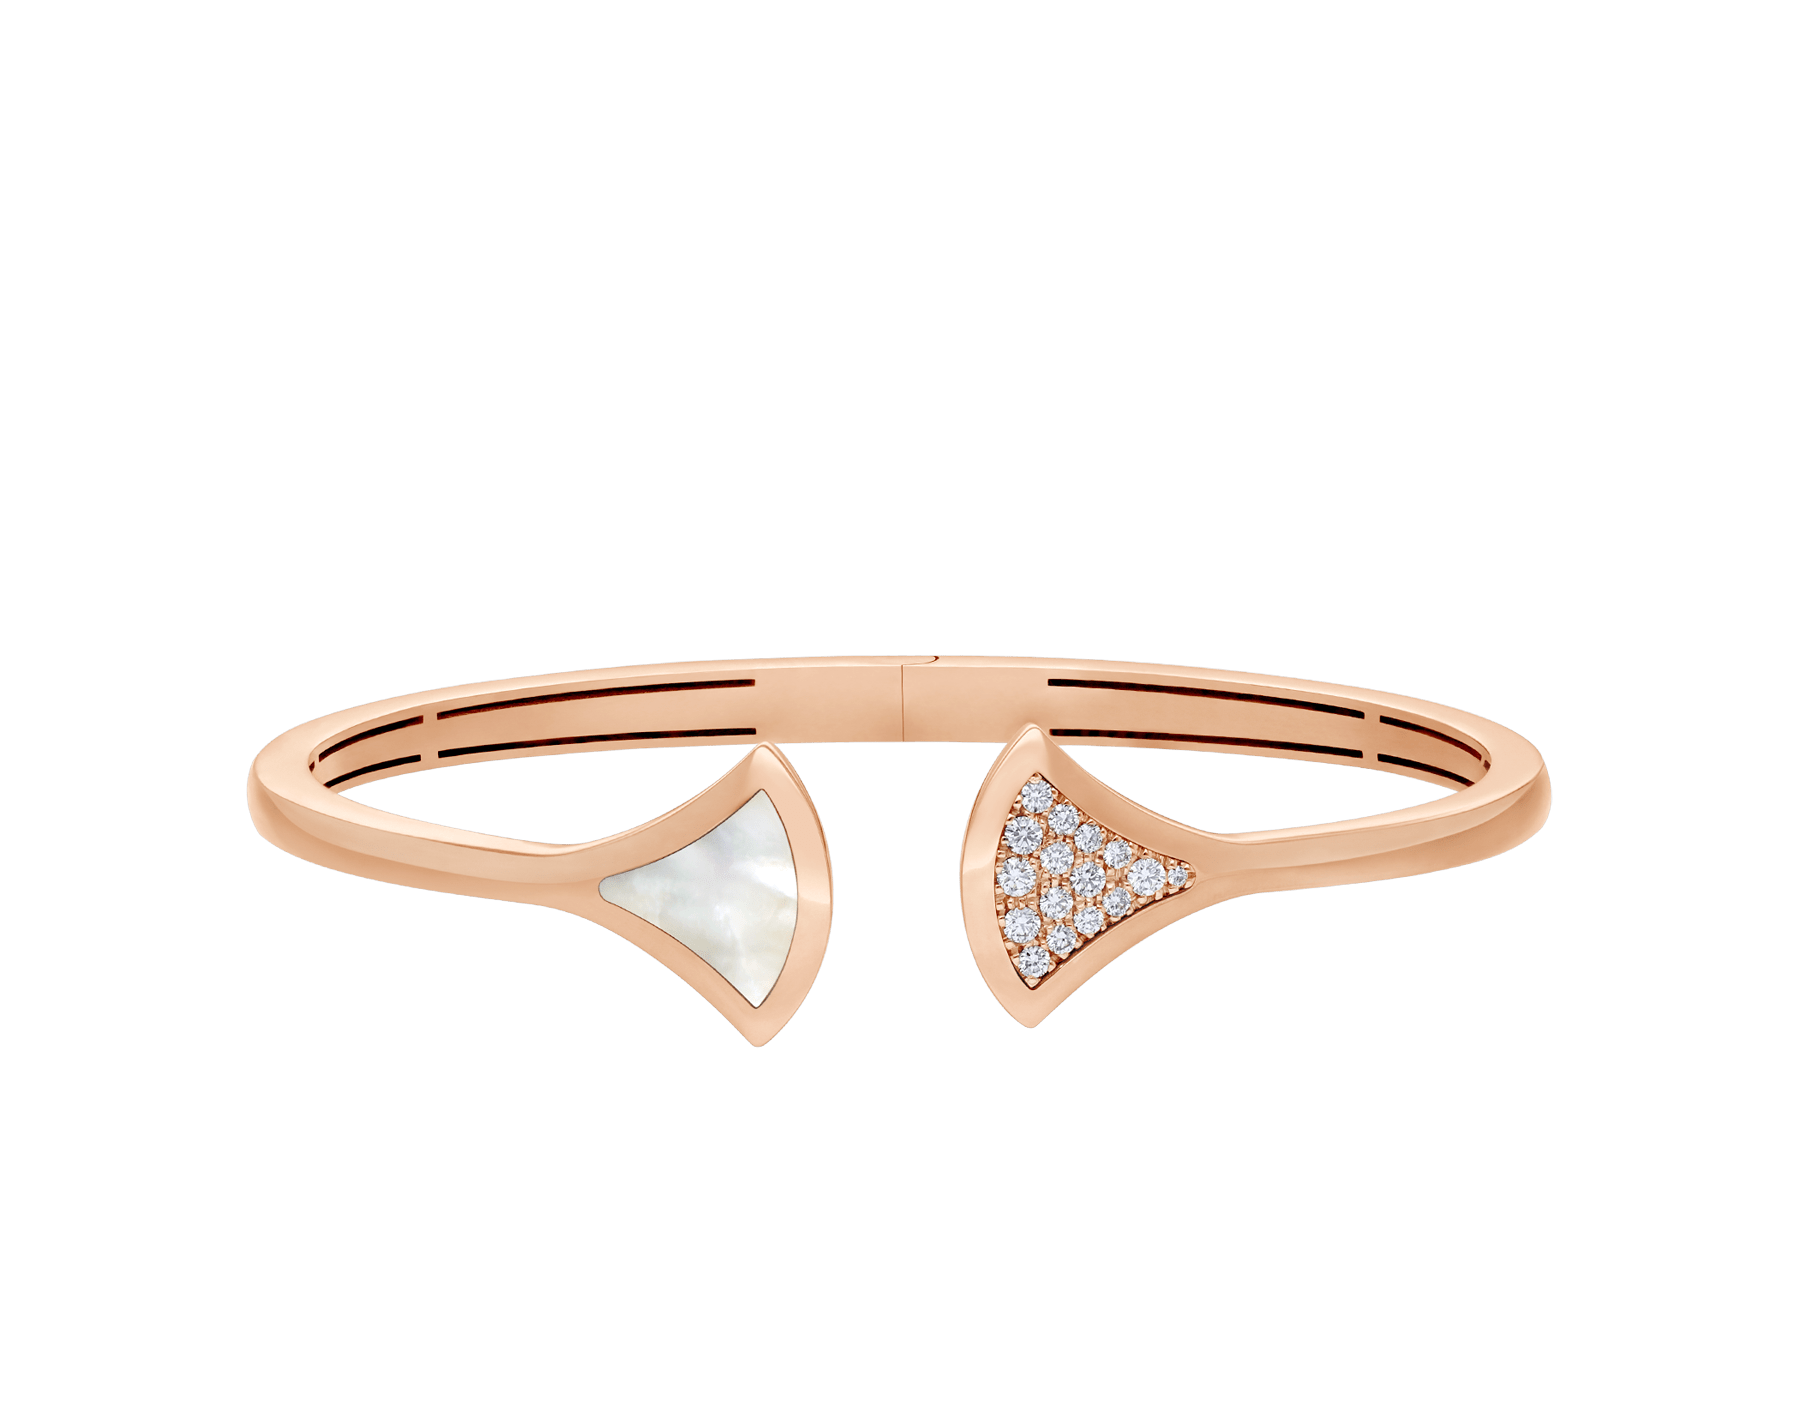 DIVAS' DREAM 18 kt rose gold bangle bracelet set with a mother of pearl element and pavé diamonds. BR858680 image 2